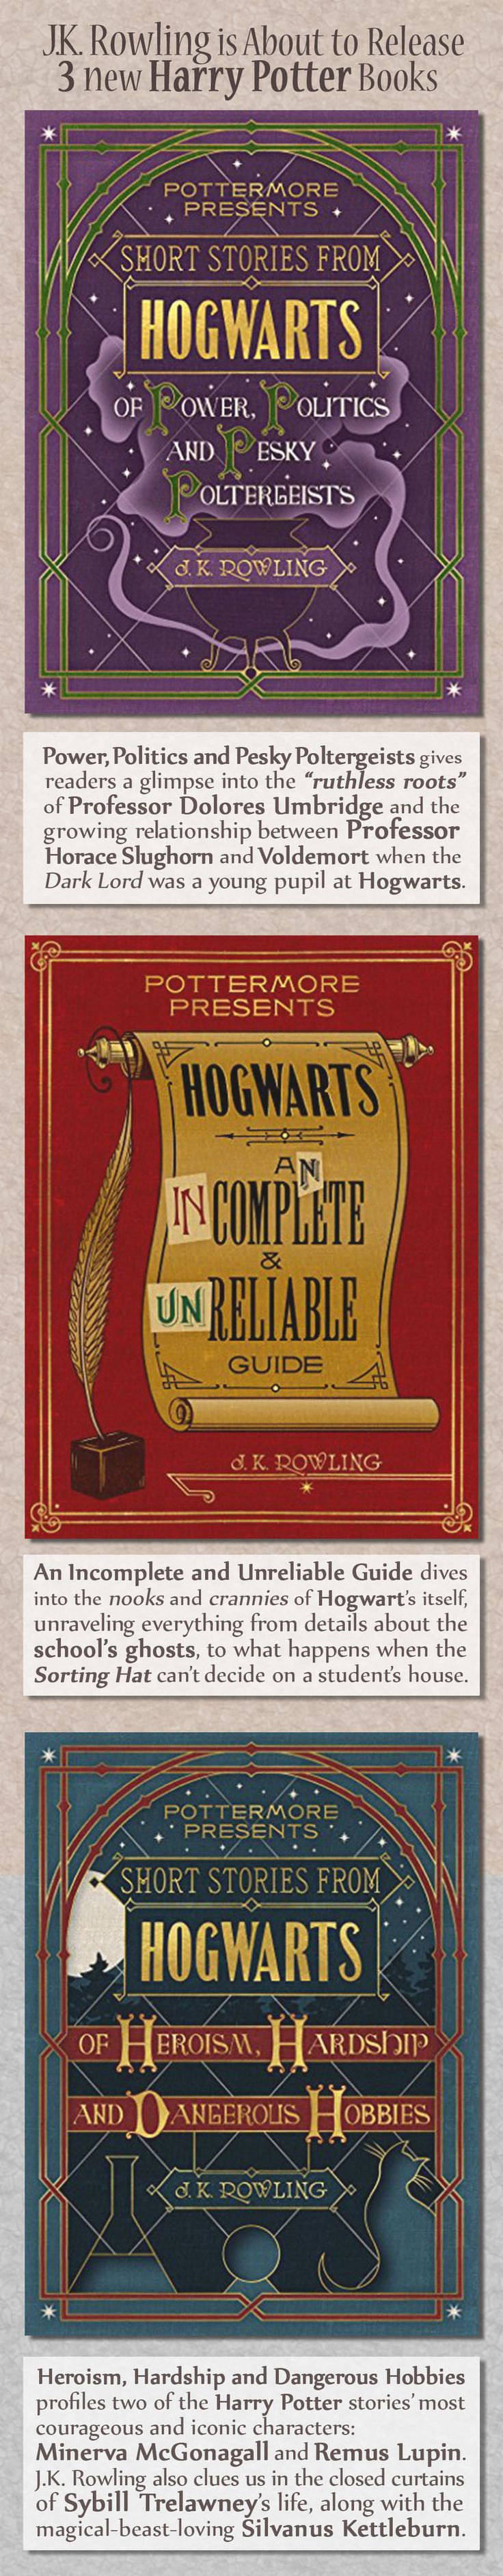 """Pottermore Presents is intended to supplement the Harry Potter book series with short-form content that is entertaining and thematically curated by the Pottermore editorial team,"" Jurevics said."